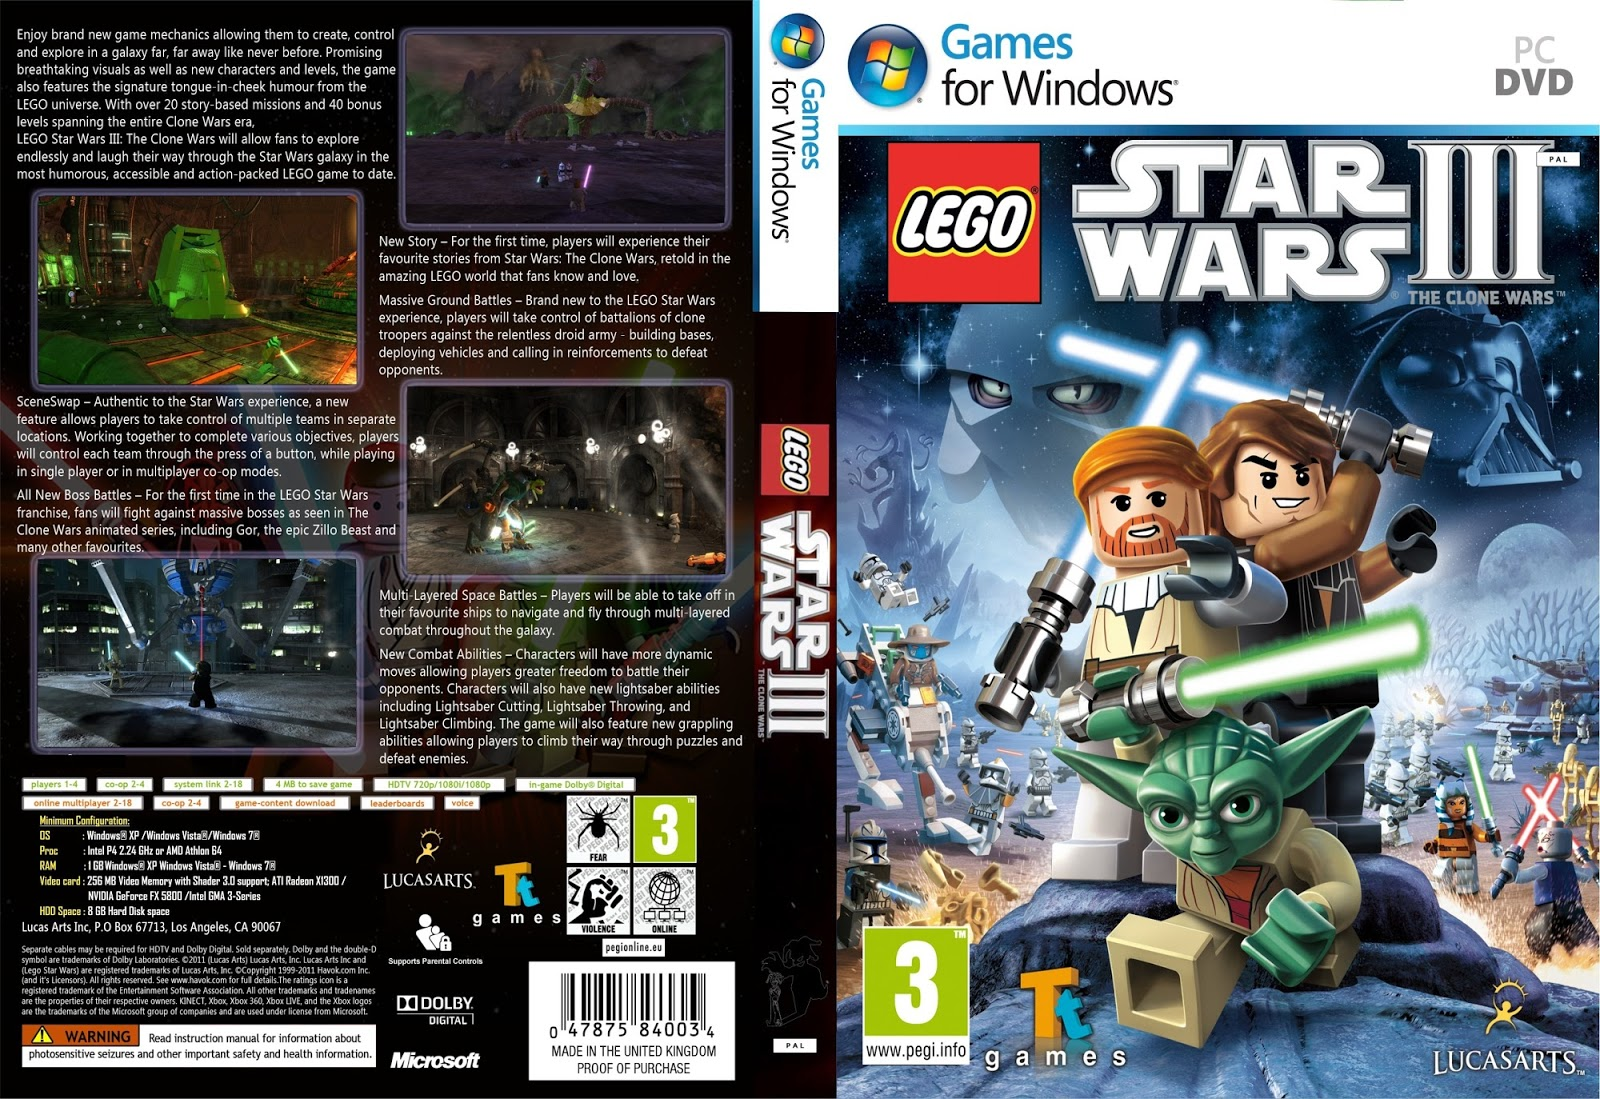 lego star wars 3 pc game download free